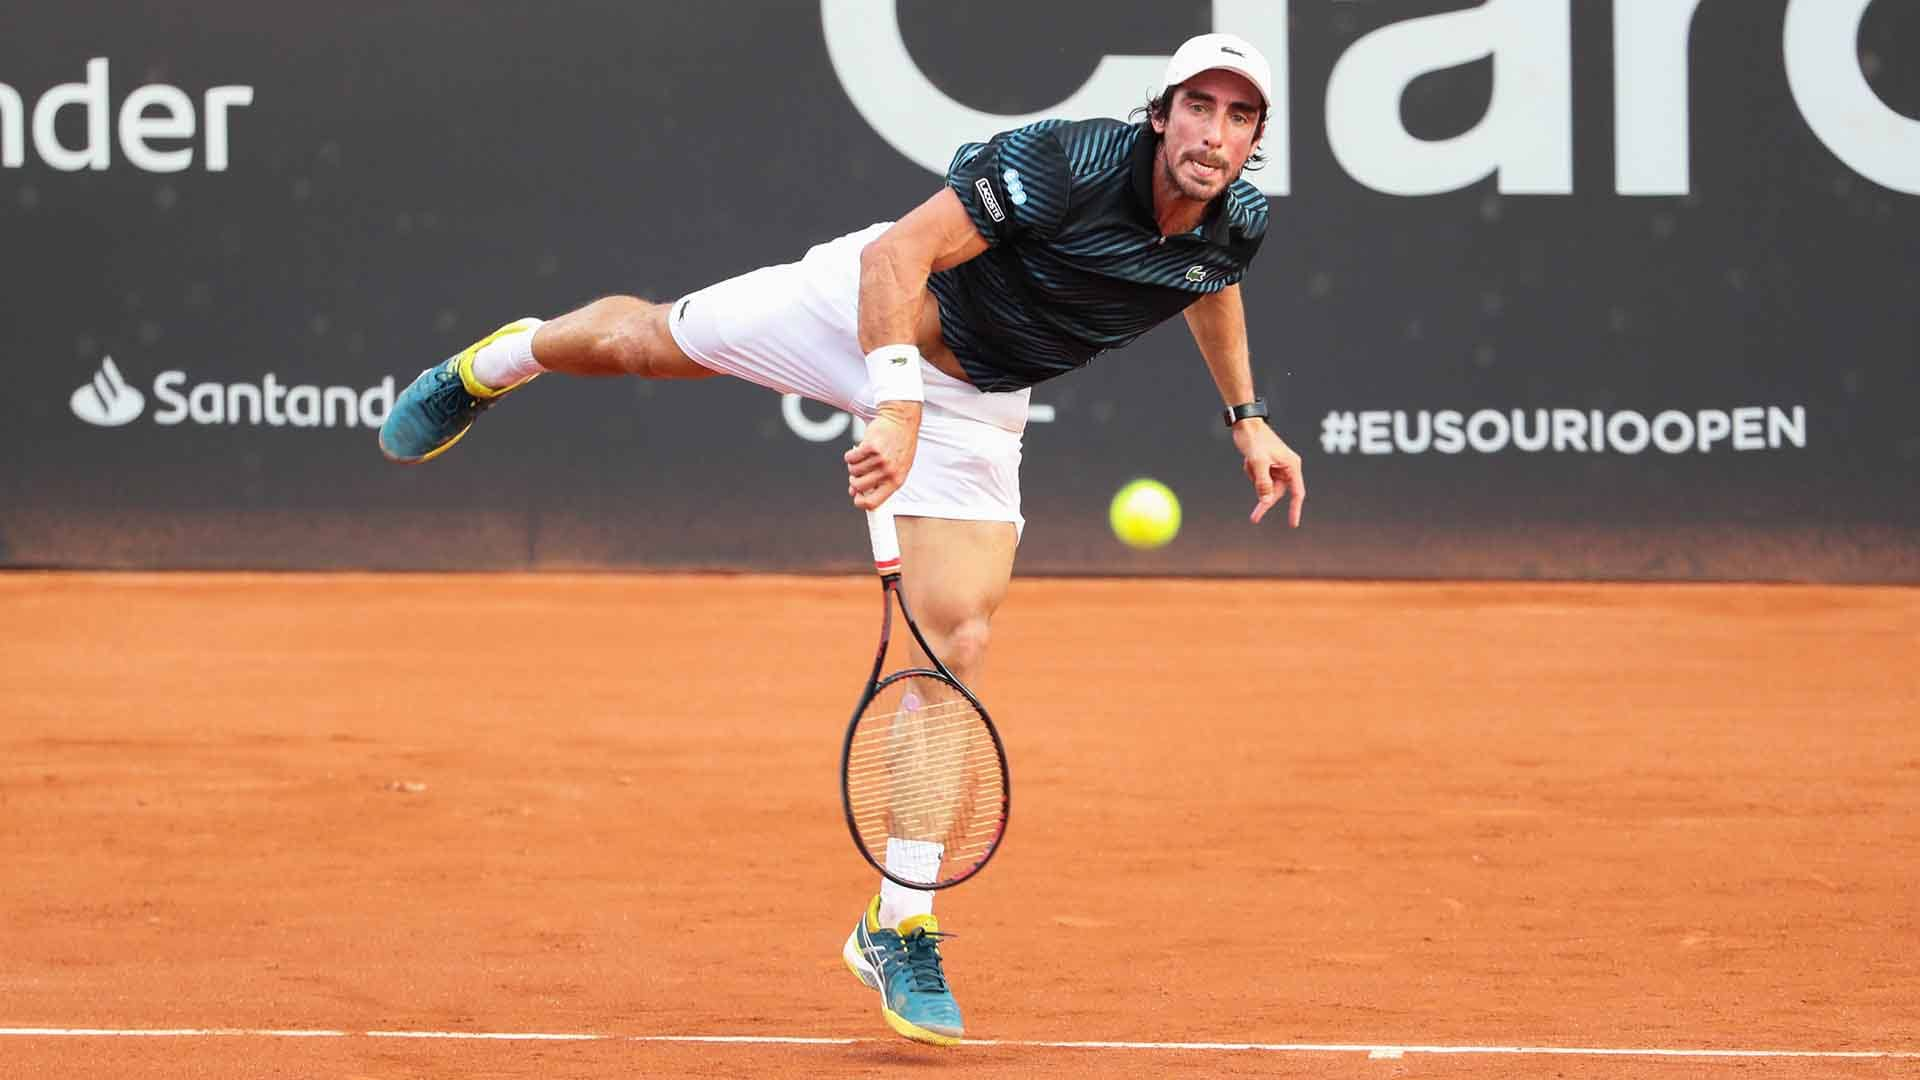 Pablo Cuevas is bidding to lift his second Rio Open presented by Claro title this week.